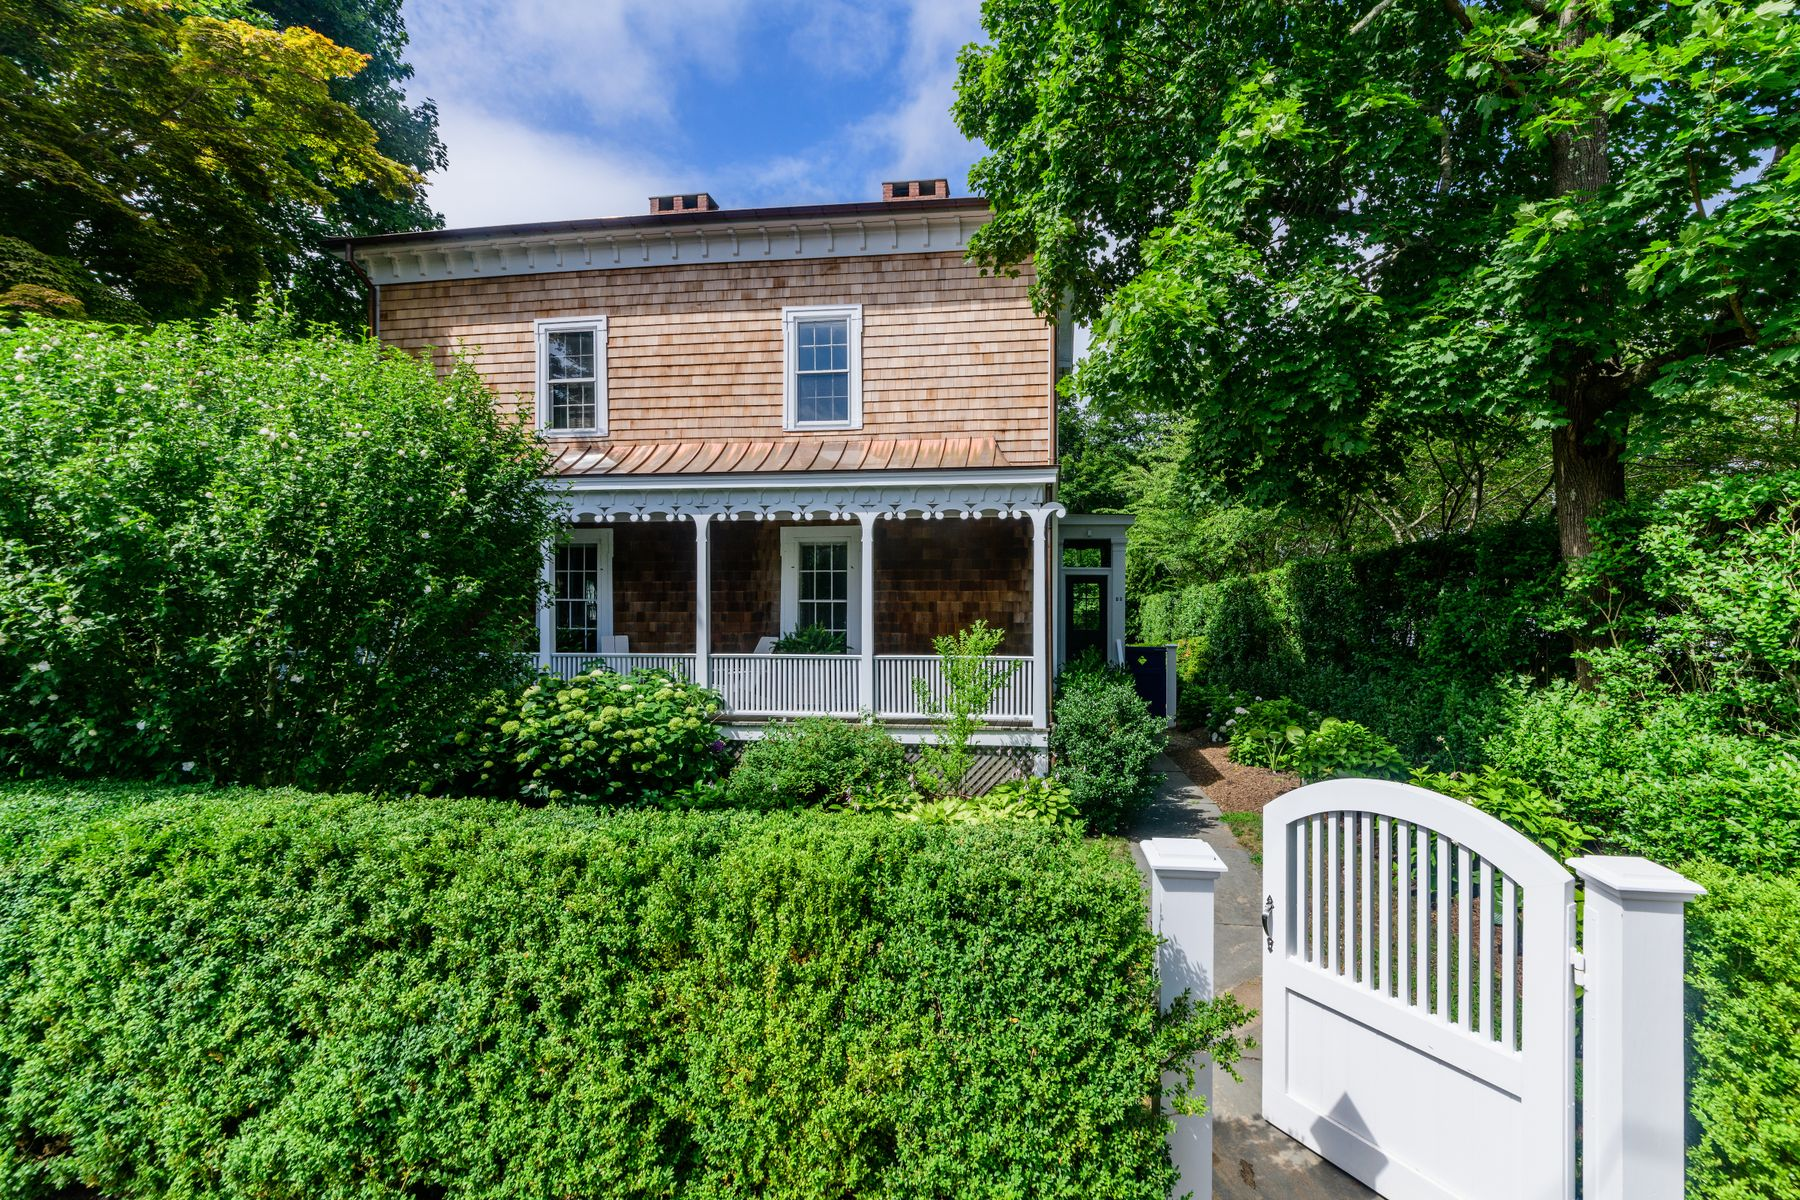 Single Family Home for Active at Historic Manse from Old Whaler's Church 12 Suffolk Street Sag Harbor, New York 11963 United States